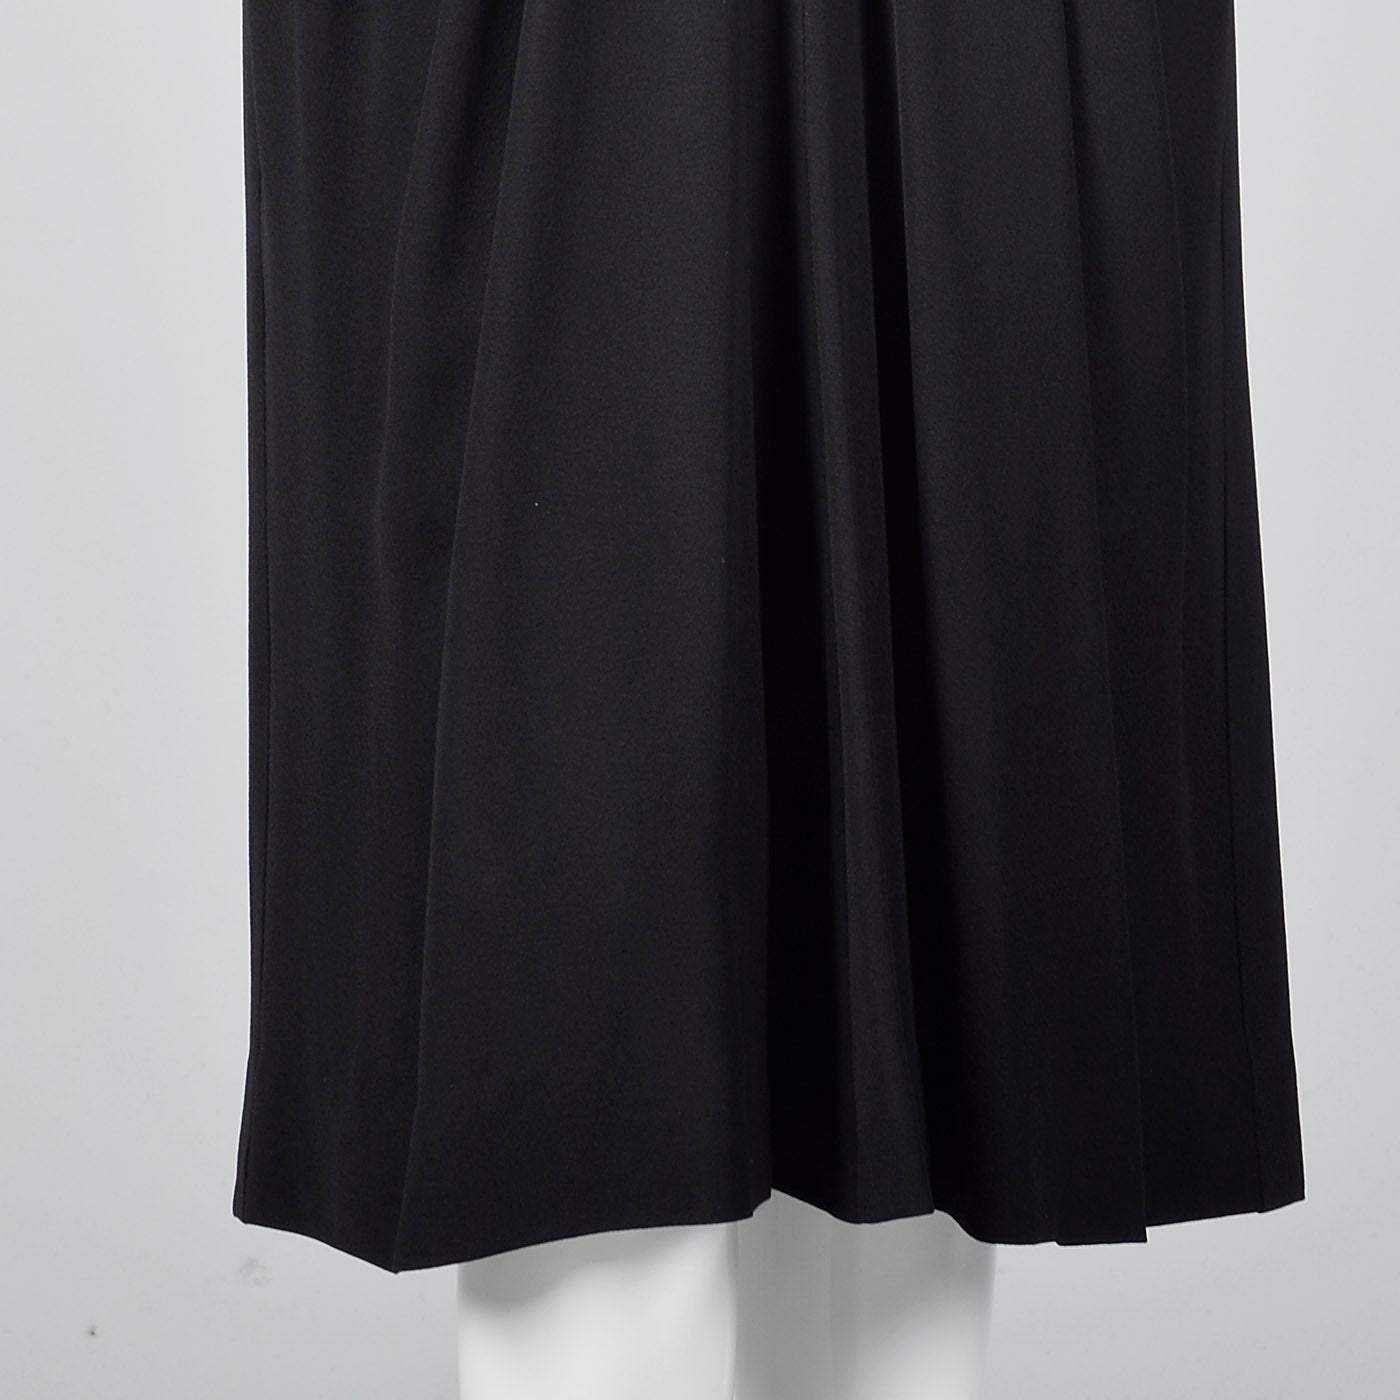 1940s Femme Fatale Black Rayon Dress with Pointed Pockets